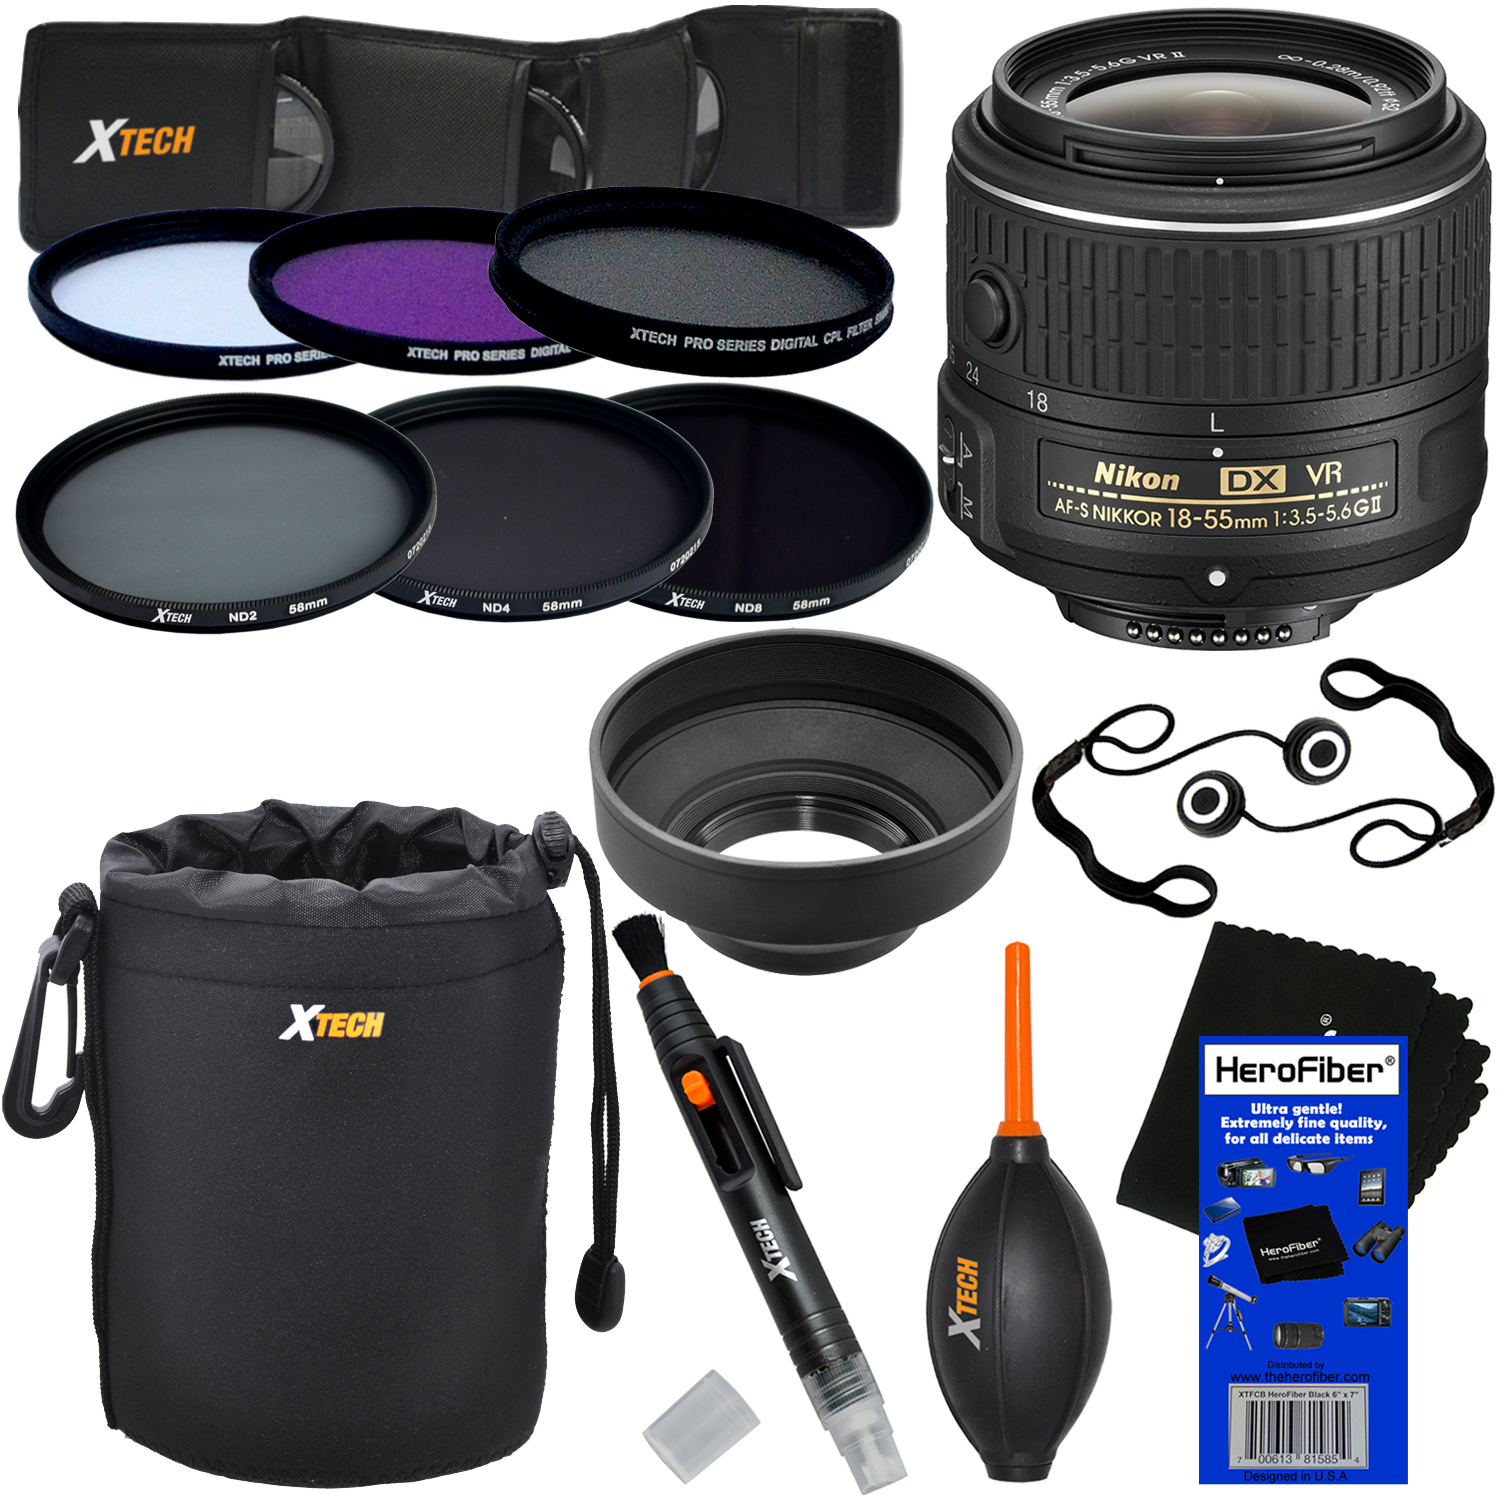 Nikon AF-S DX NIKKOR 18-55mm f/3.5-5.6G VR II Zoom Lens for Nikon DSLR Cameras + ND Filters ND2, ND4, ND8 + 11pc Deluxe Accessory Kit w/ HeroFiber Cleaning Cloth